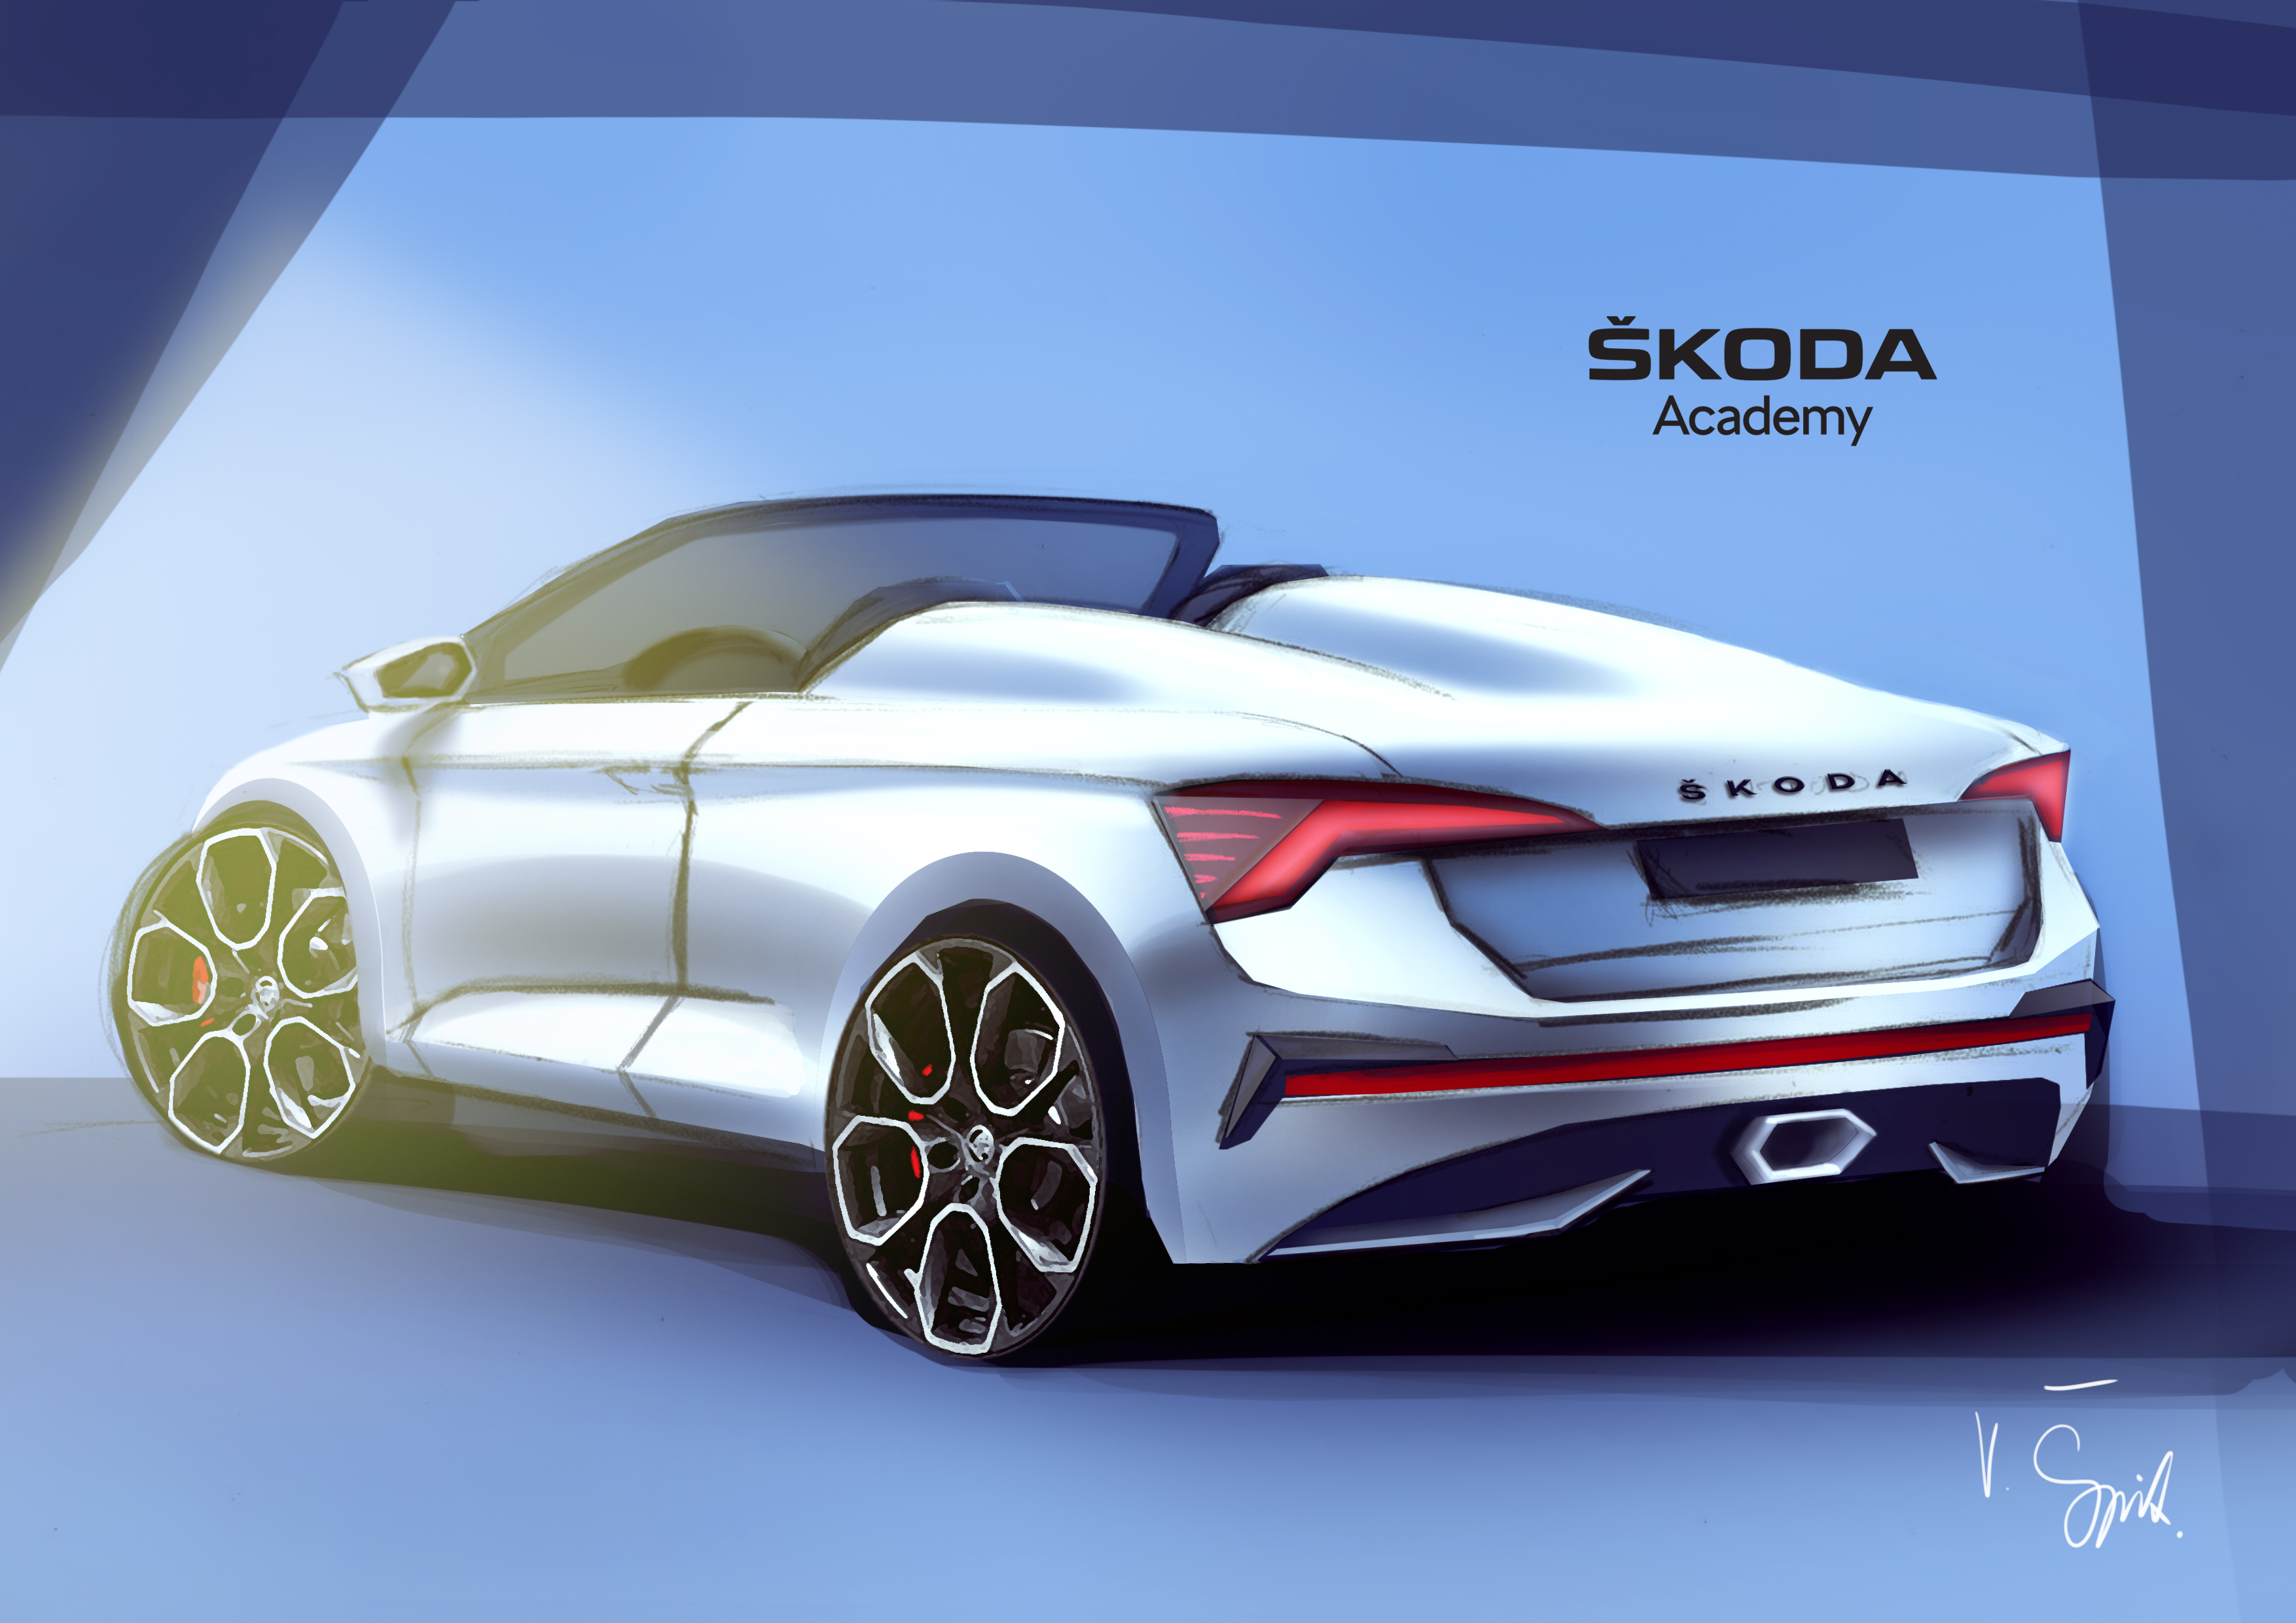 Seventh Skoda Student Concept Car Is Taking Shape Students Are Working On A Spider Variant Of The Skoda Scala Skoda Storyboard